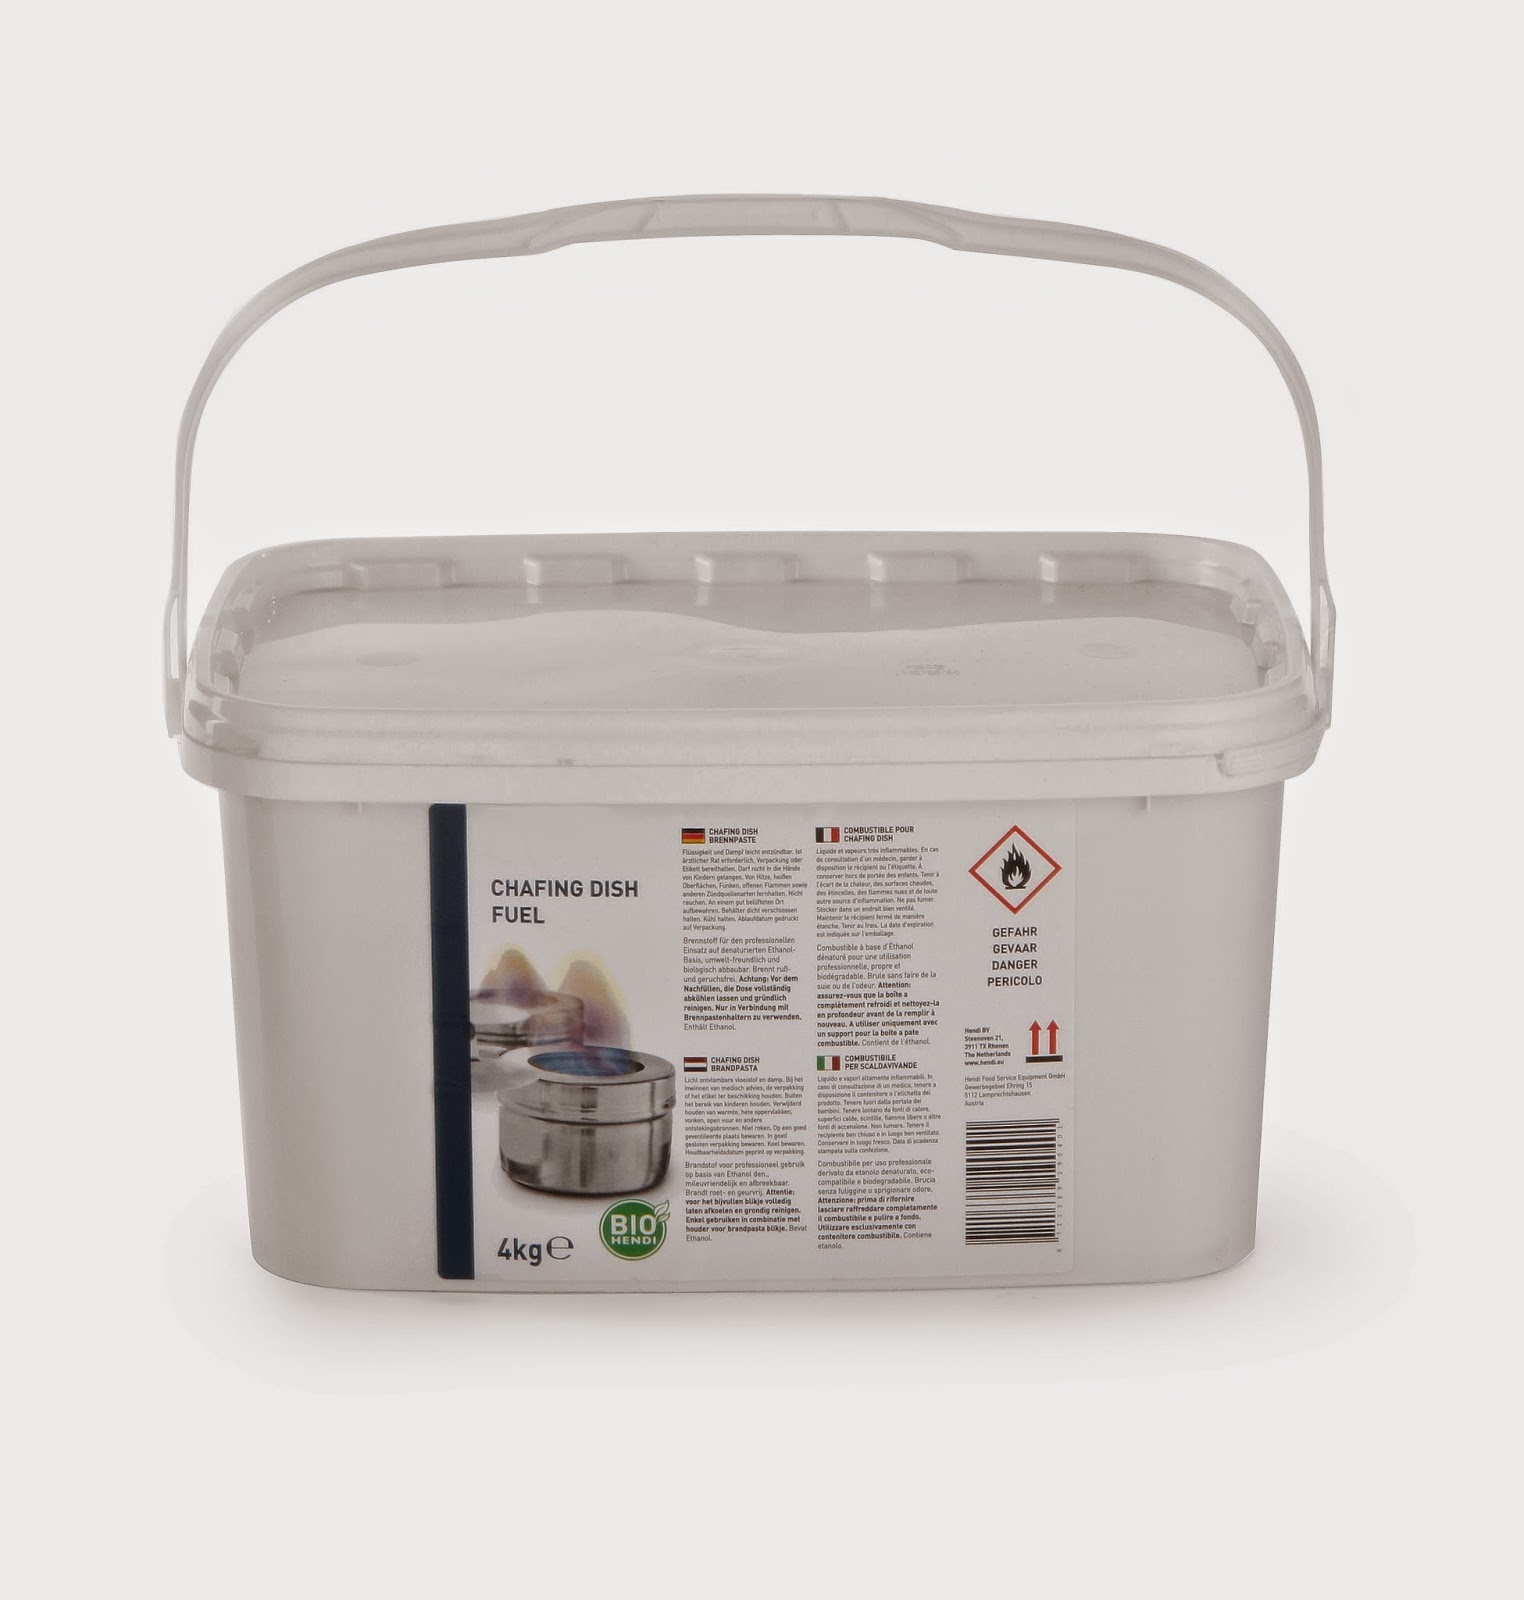 Combustibil Solid pentru Chafing Dish 4KG